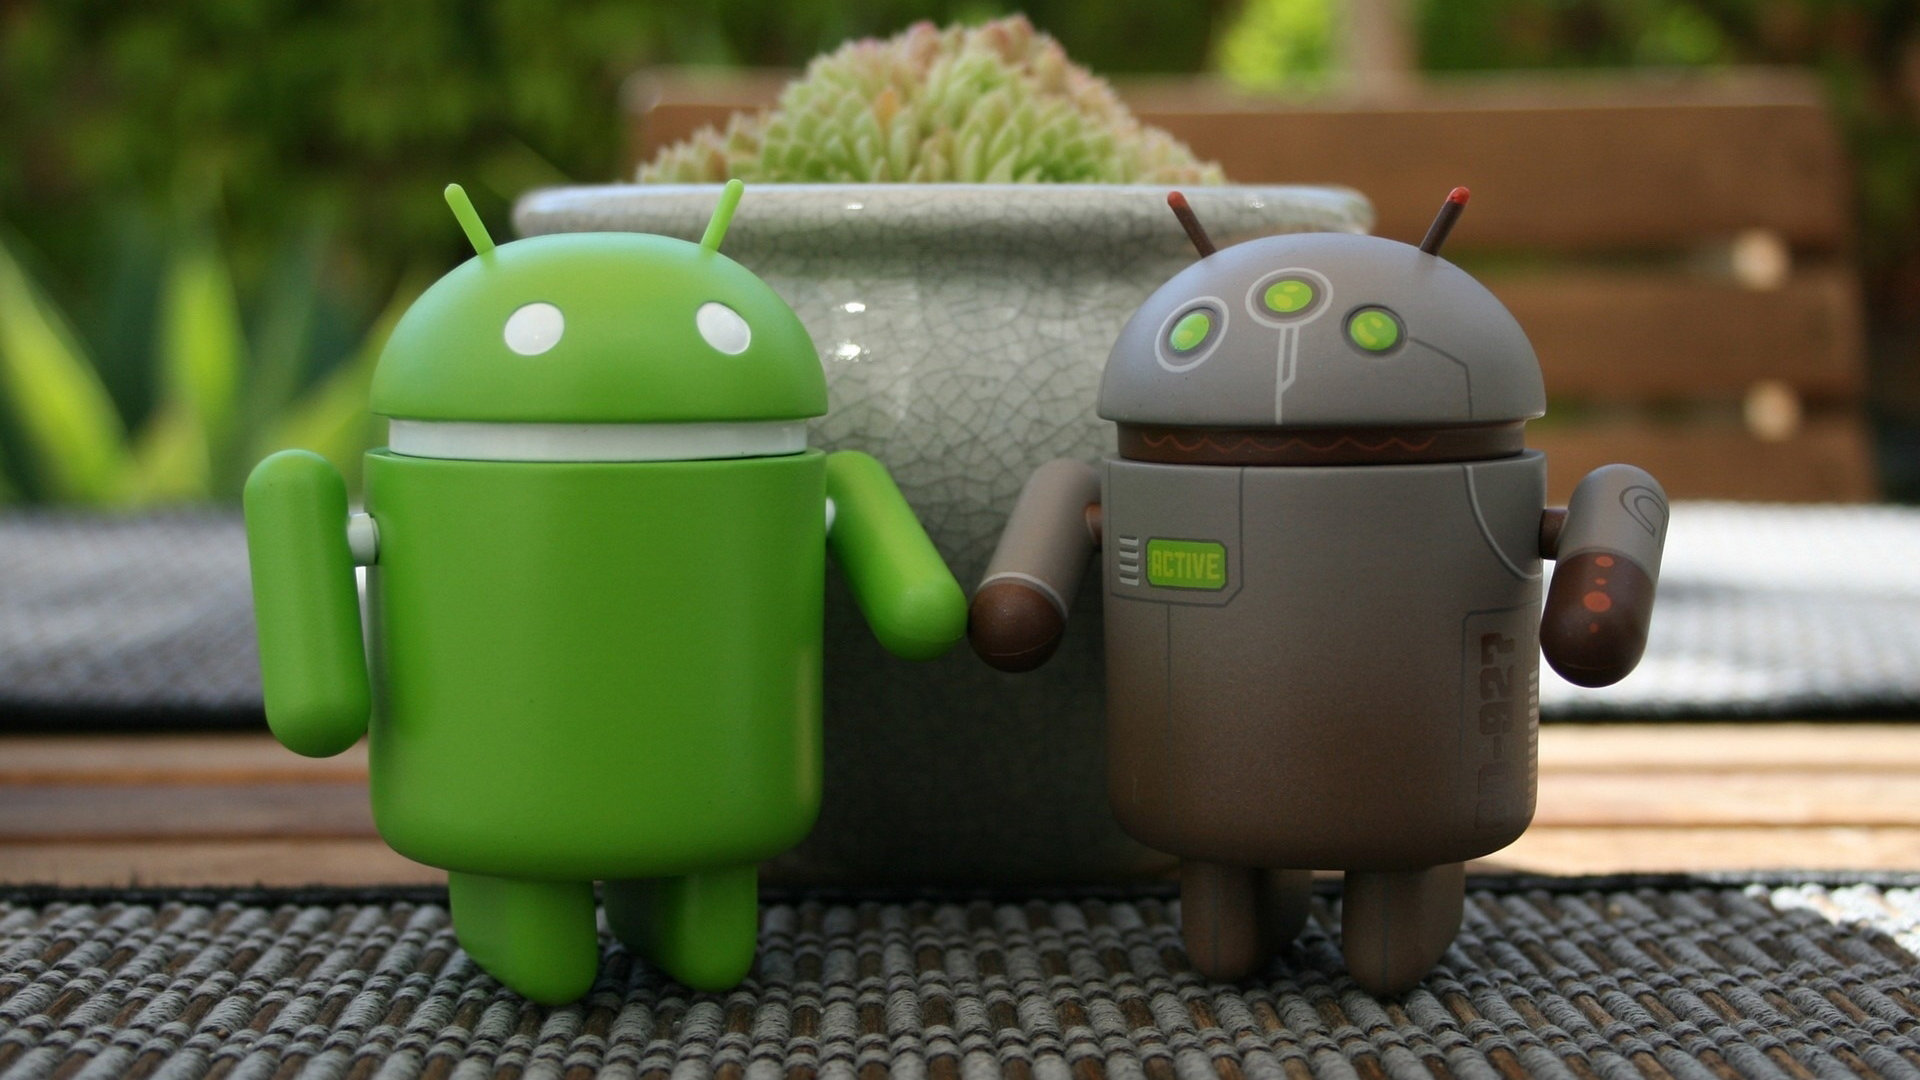 Android robot hd wallpapers wallpapersafari for Wallpapers 3d animados para android